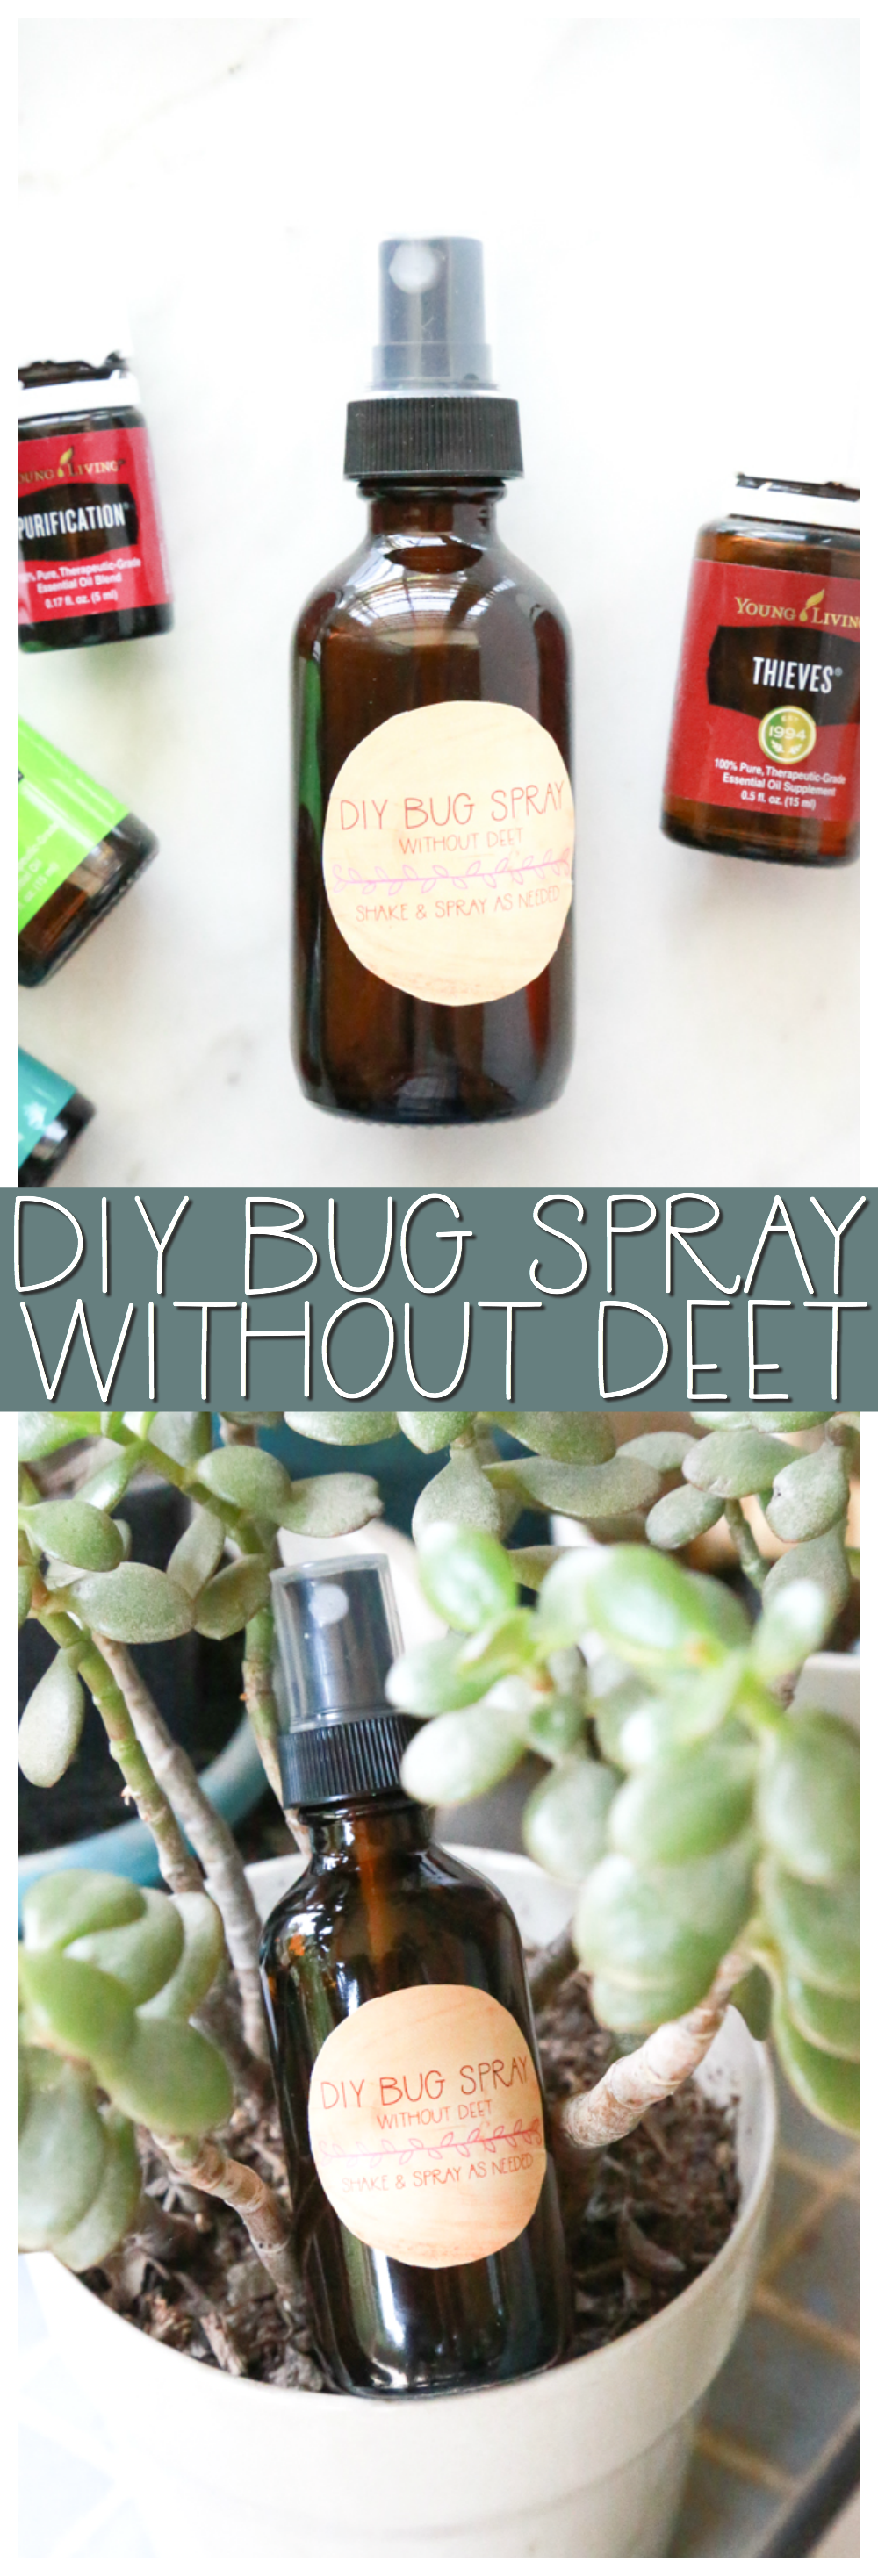 Make your own DIY Bug Spray without DEET to keep harmful chemicals and bugs off your skin.